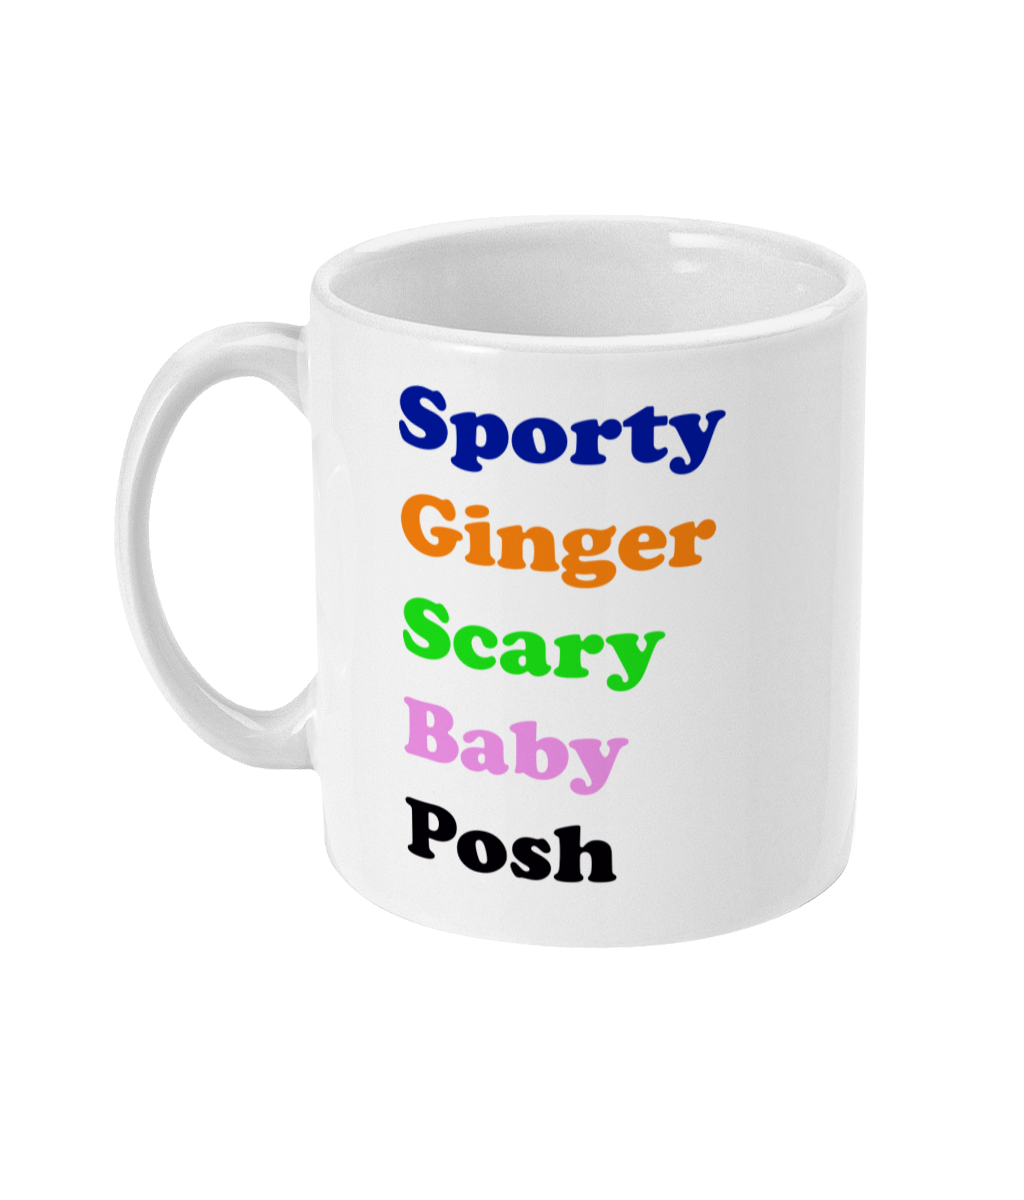 Spice Girls Mug